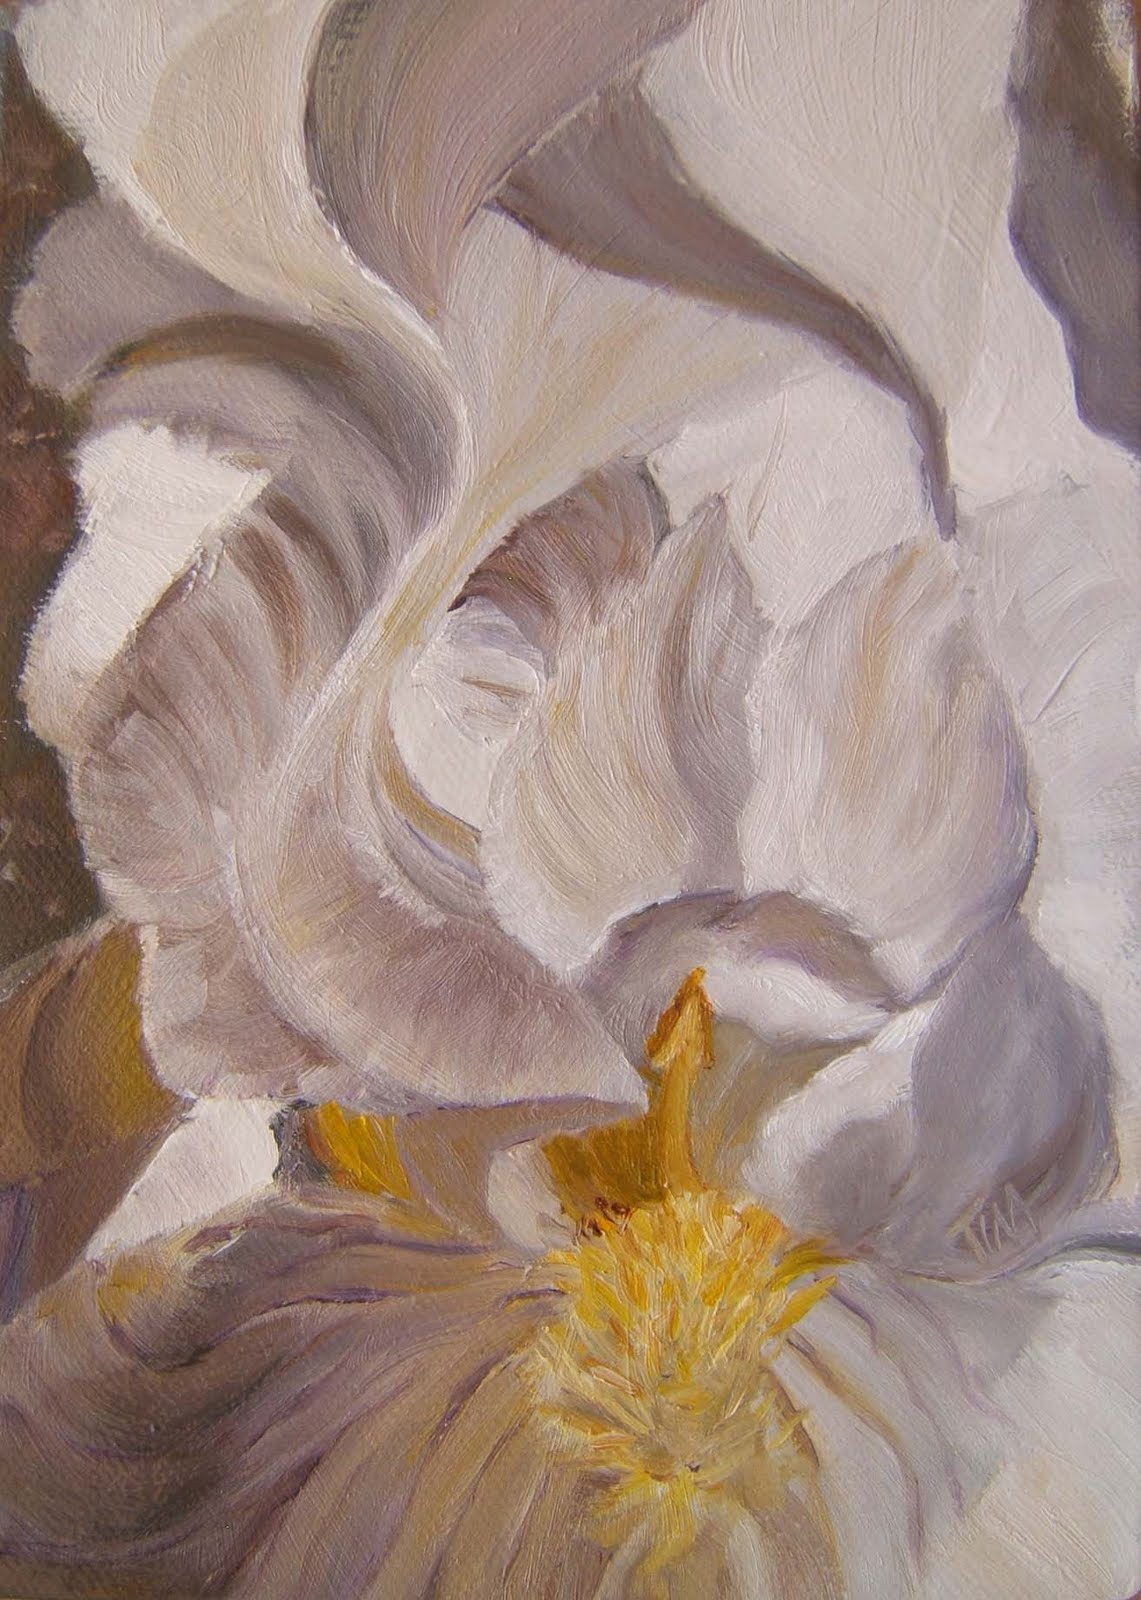 """7"""" x 5"""" oil on canvas, copyright 2010 Tina M. Welter"""